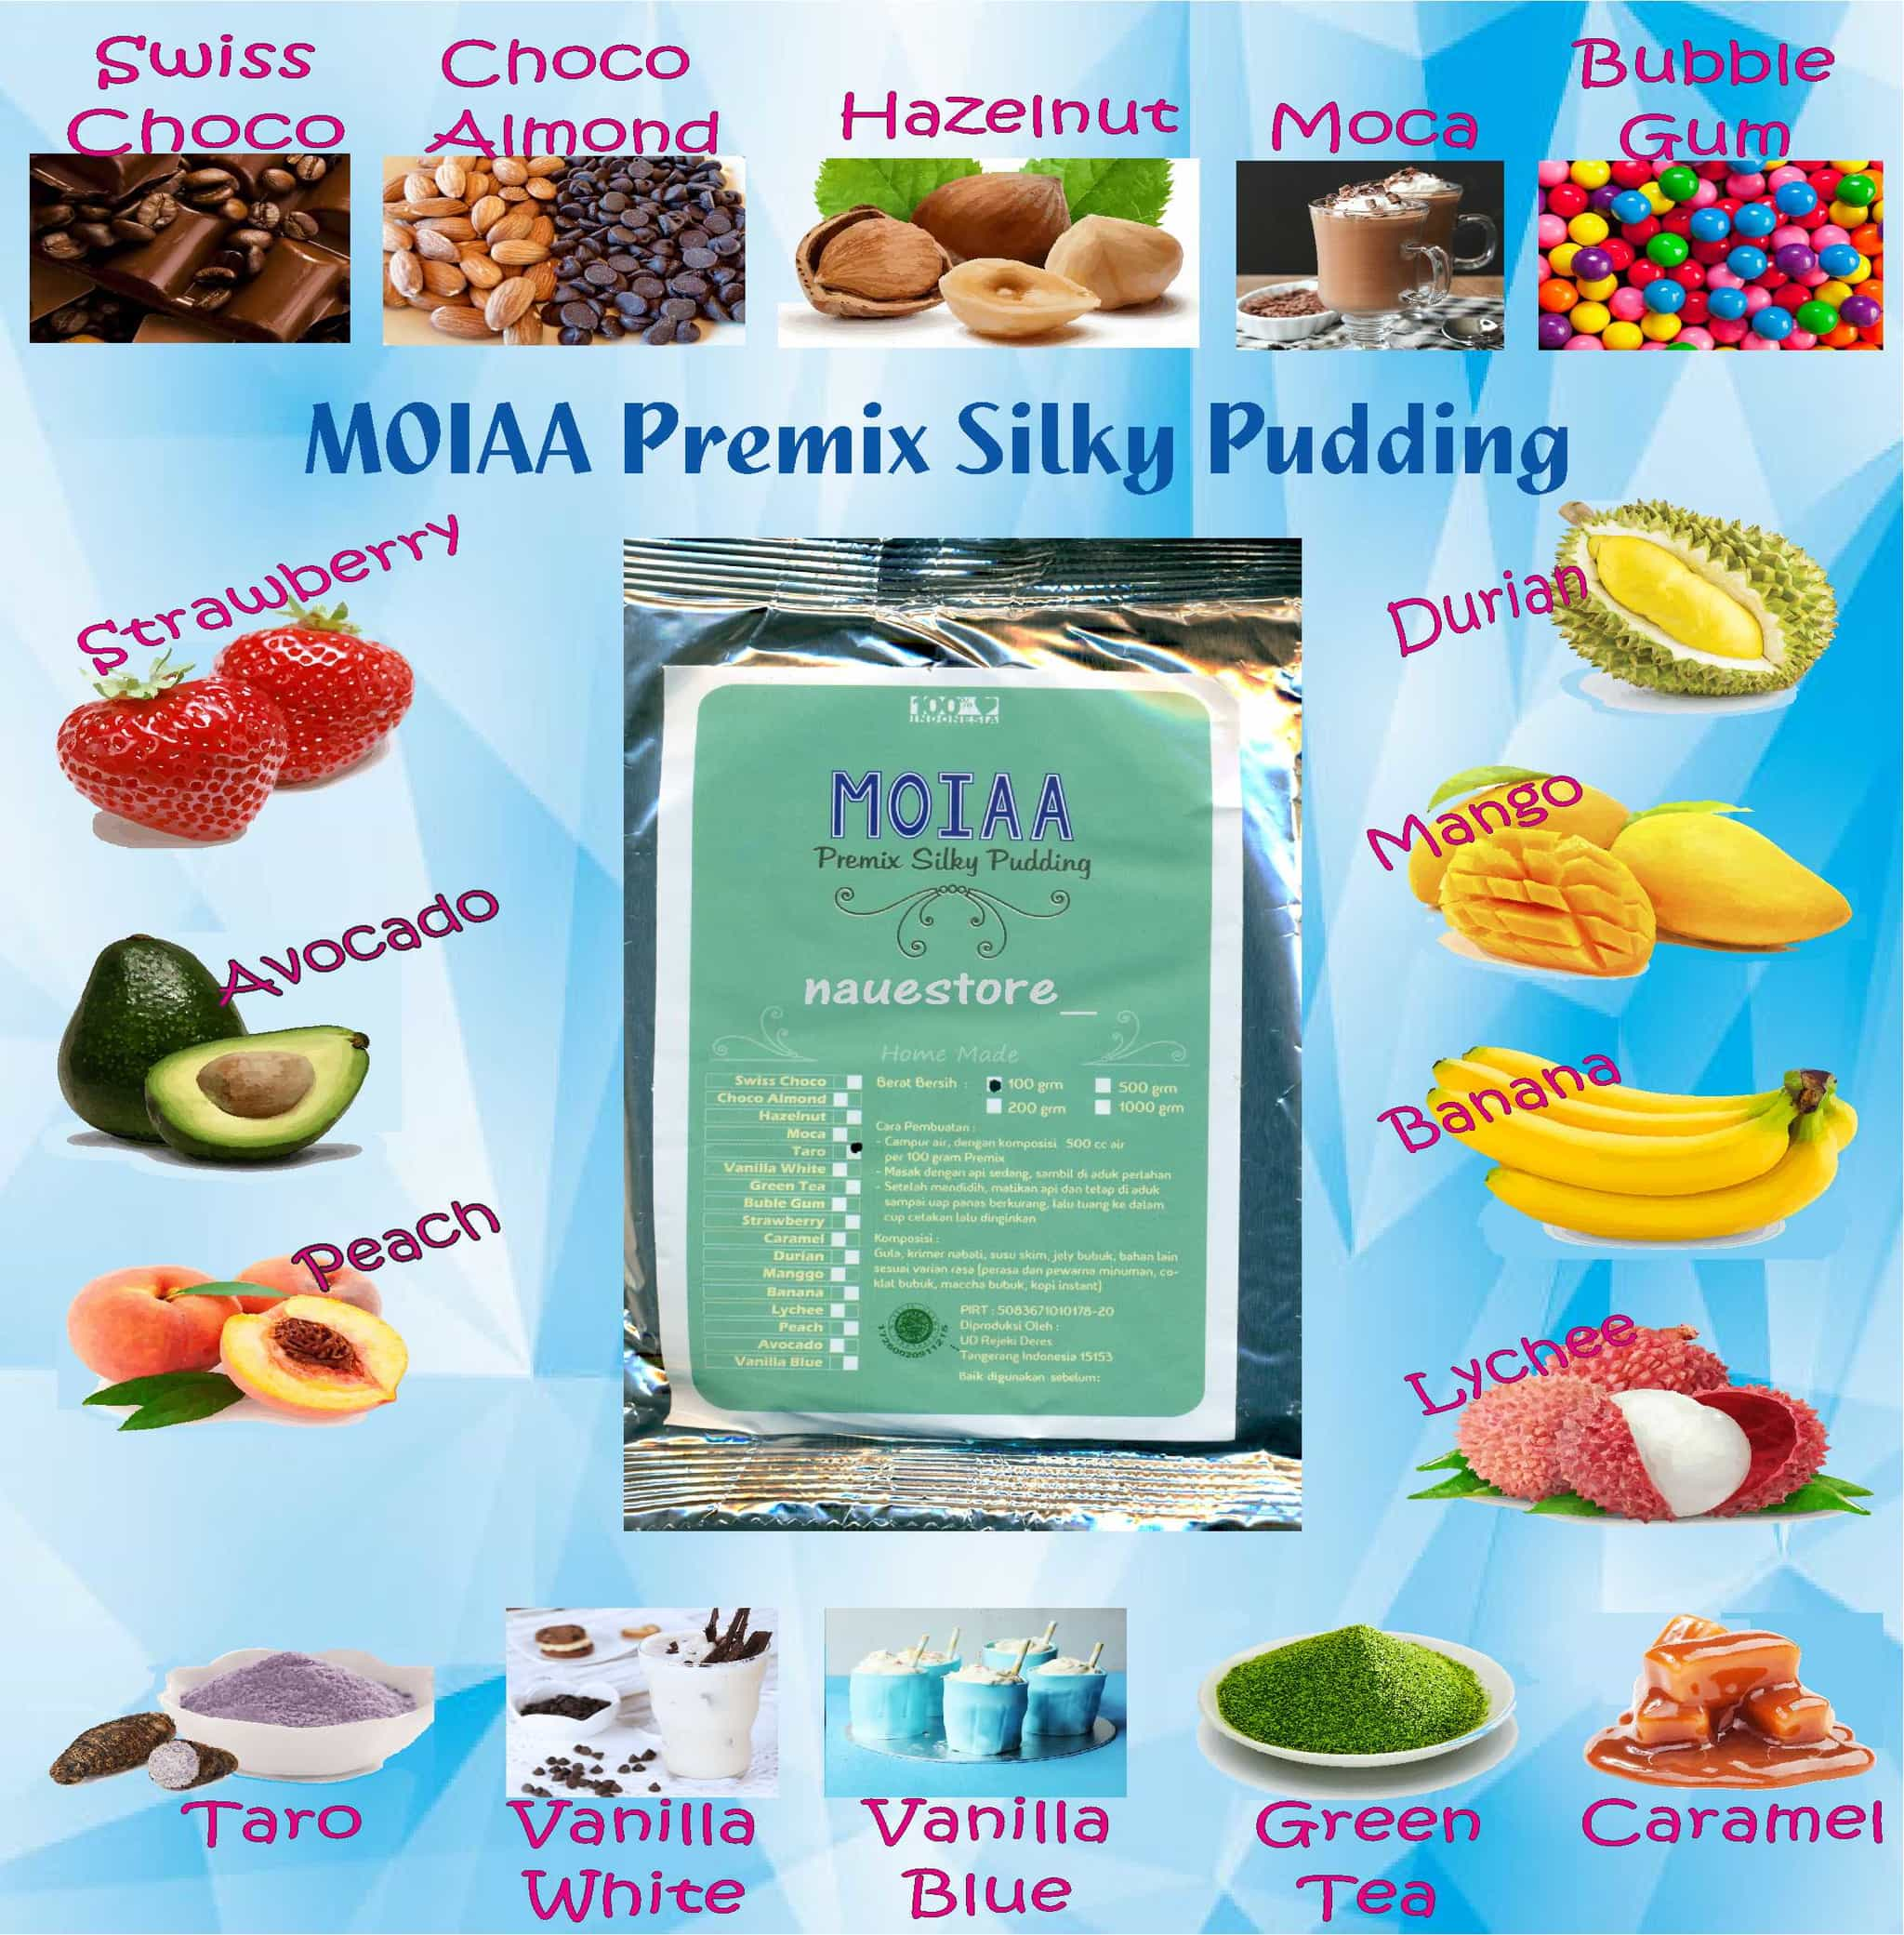 Hemat Paket 5 Bh Moiaa Premix Silky Pudding 200 Gr Puding Sutera Moia Moya  Hot Jual Sutra Bubuk Powder Instan Lembut Sehat Enak Herby Store